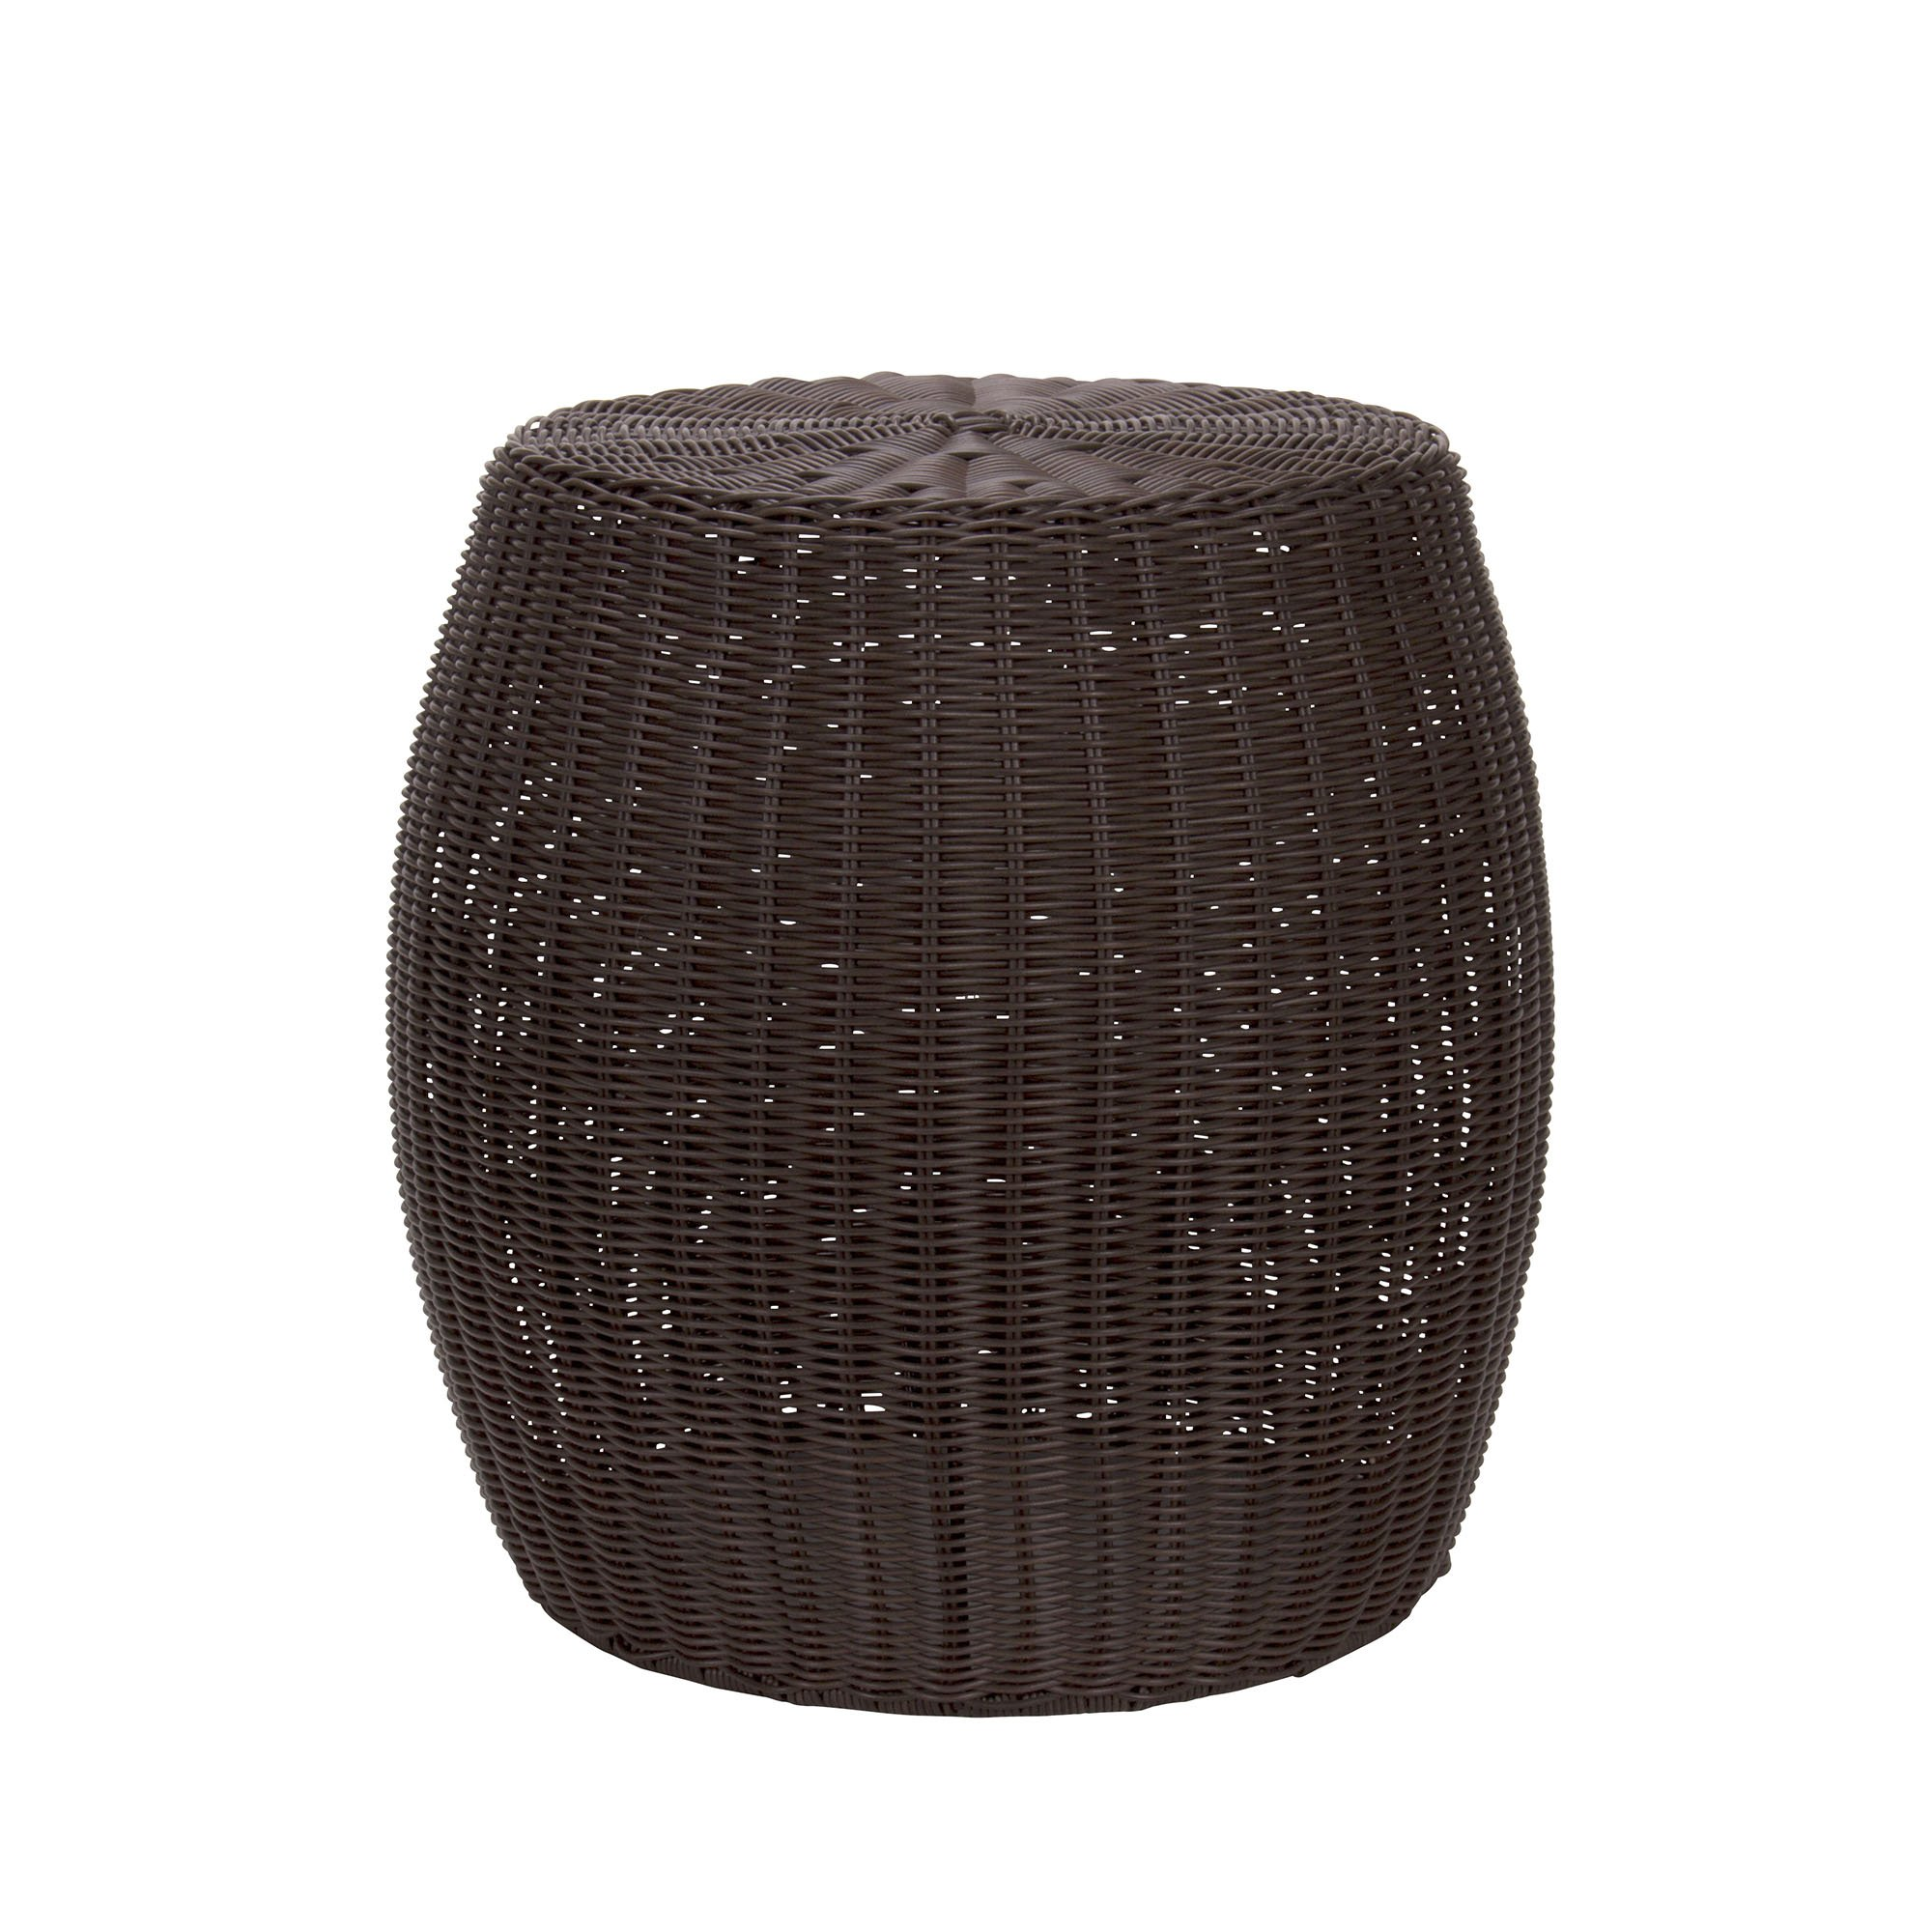 resin wicker side table find outdoor brown get quotations household essentials barrel slim console with drawers rod iron round granite top coffee copper lamp room desk painted